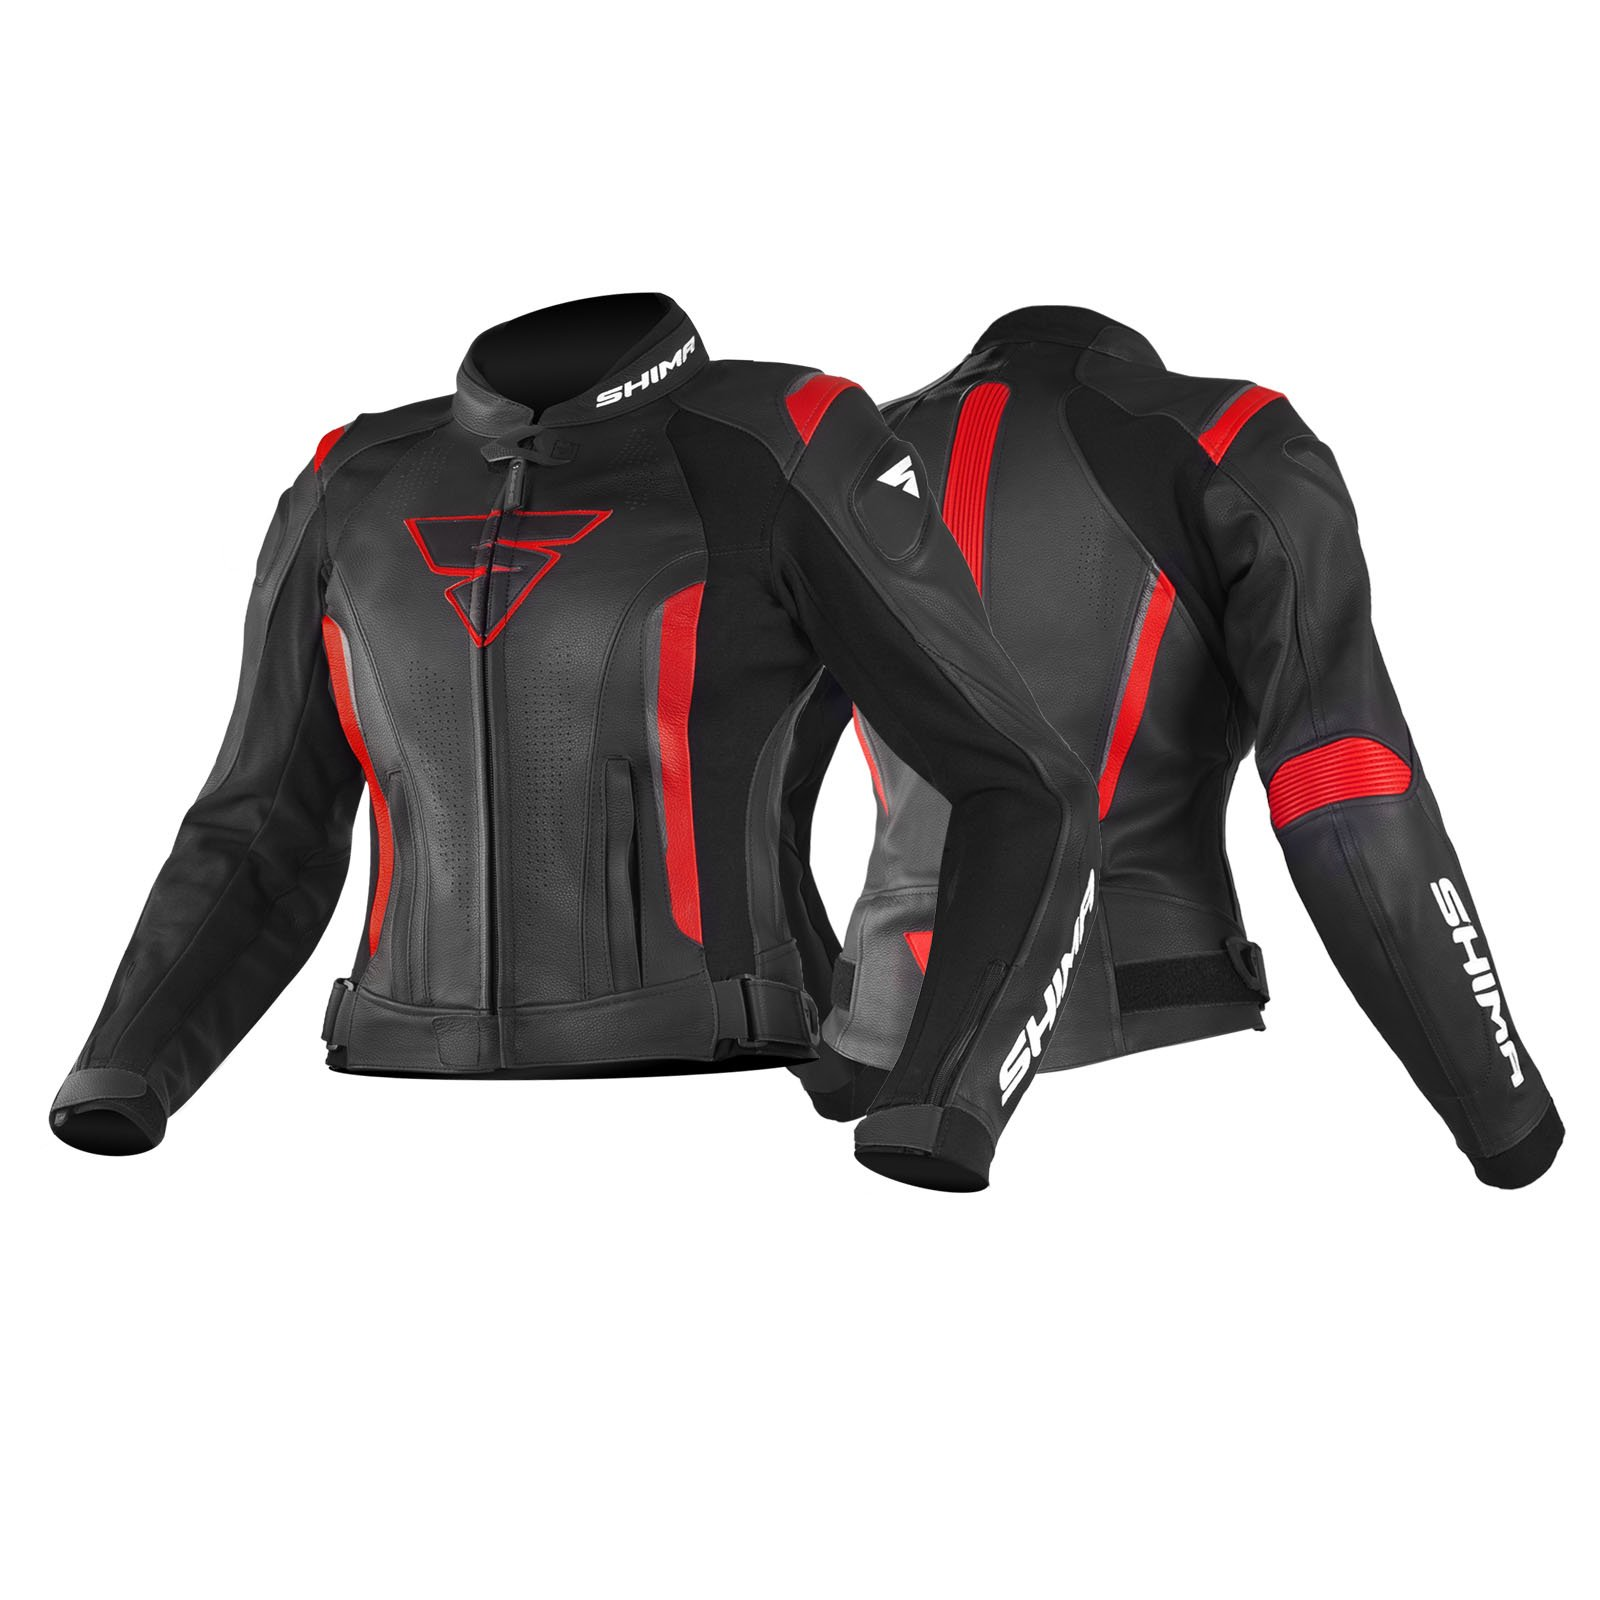 Size 32 Sports Leather Motorcycle Womens Jacket with Protectors SHIMA MIURA JACKET BLACK//RED 32-42, Black//Red